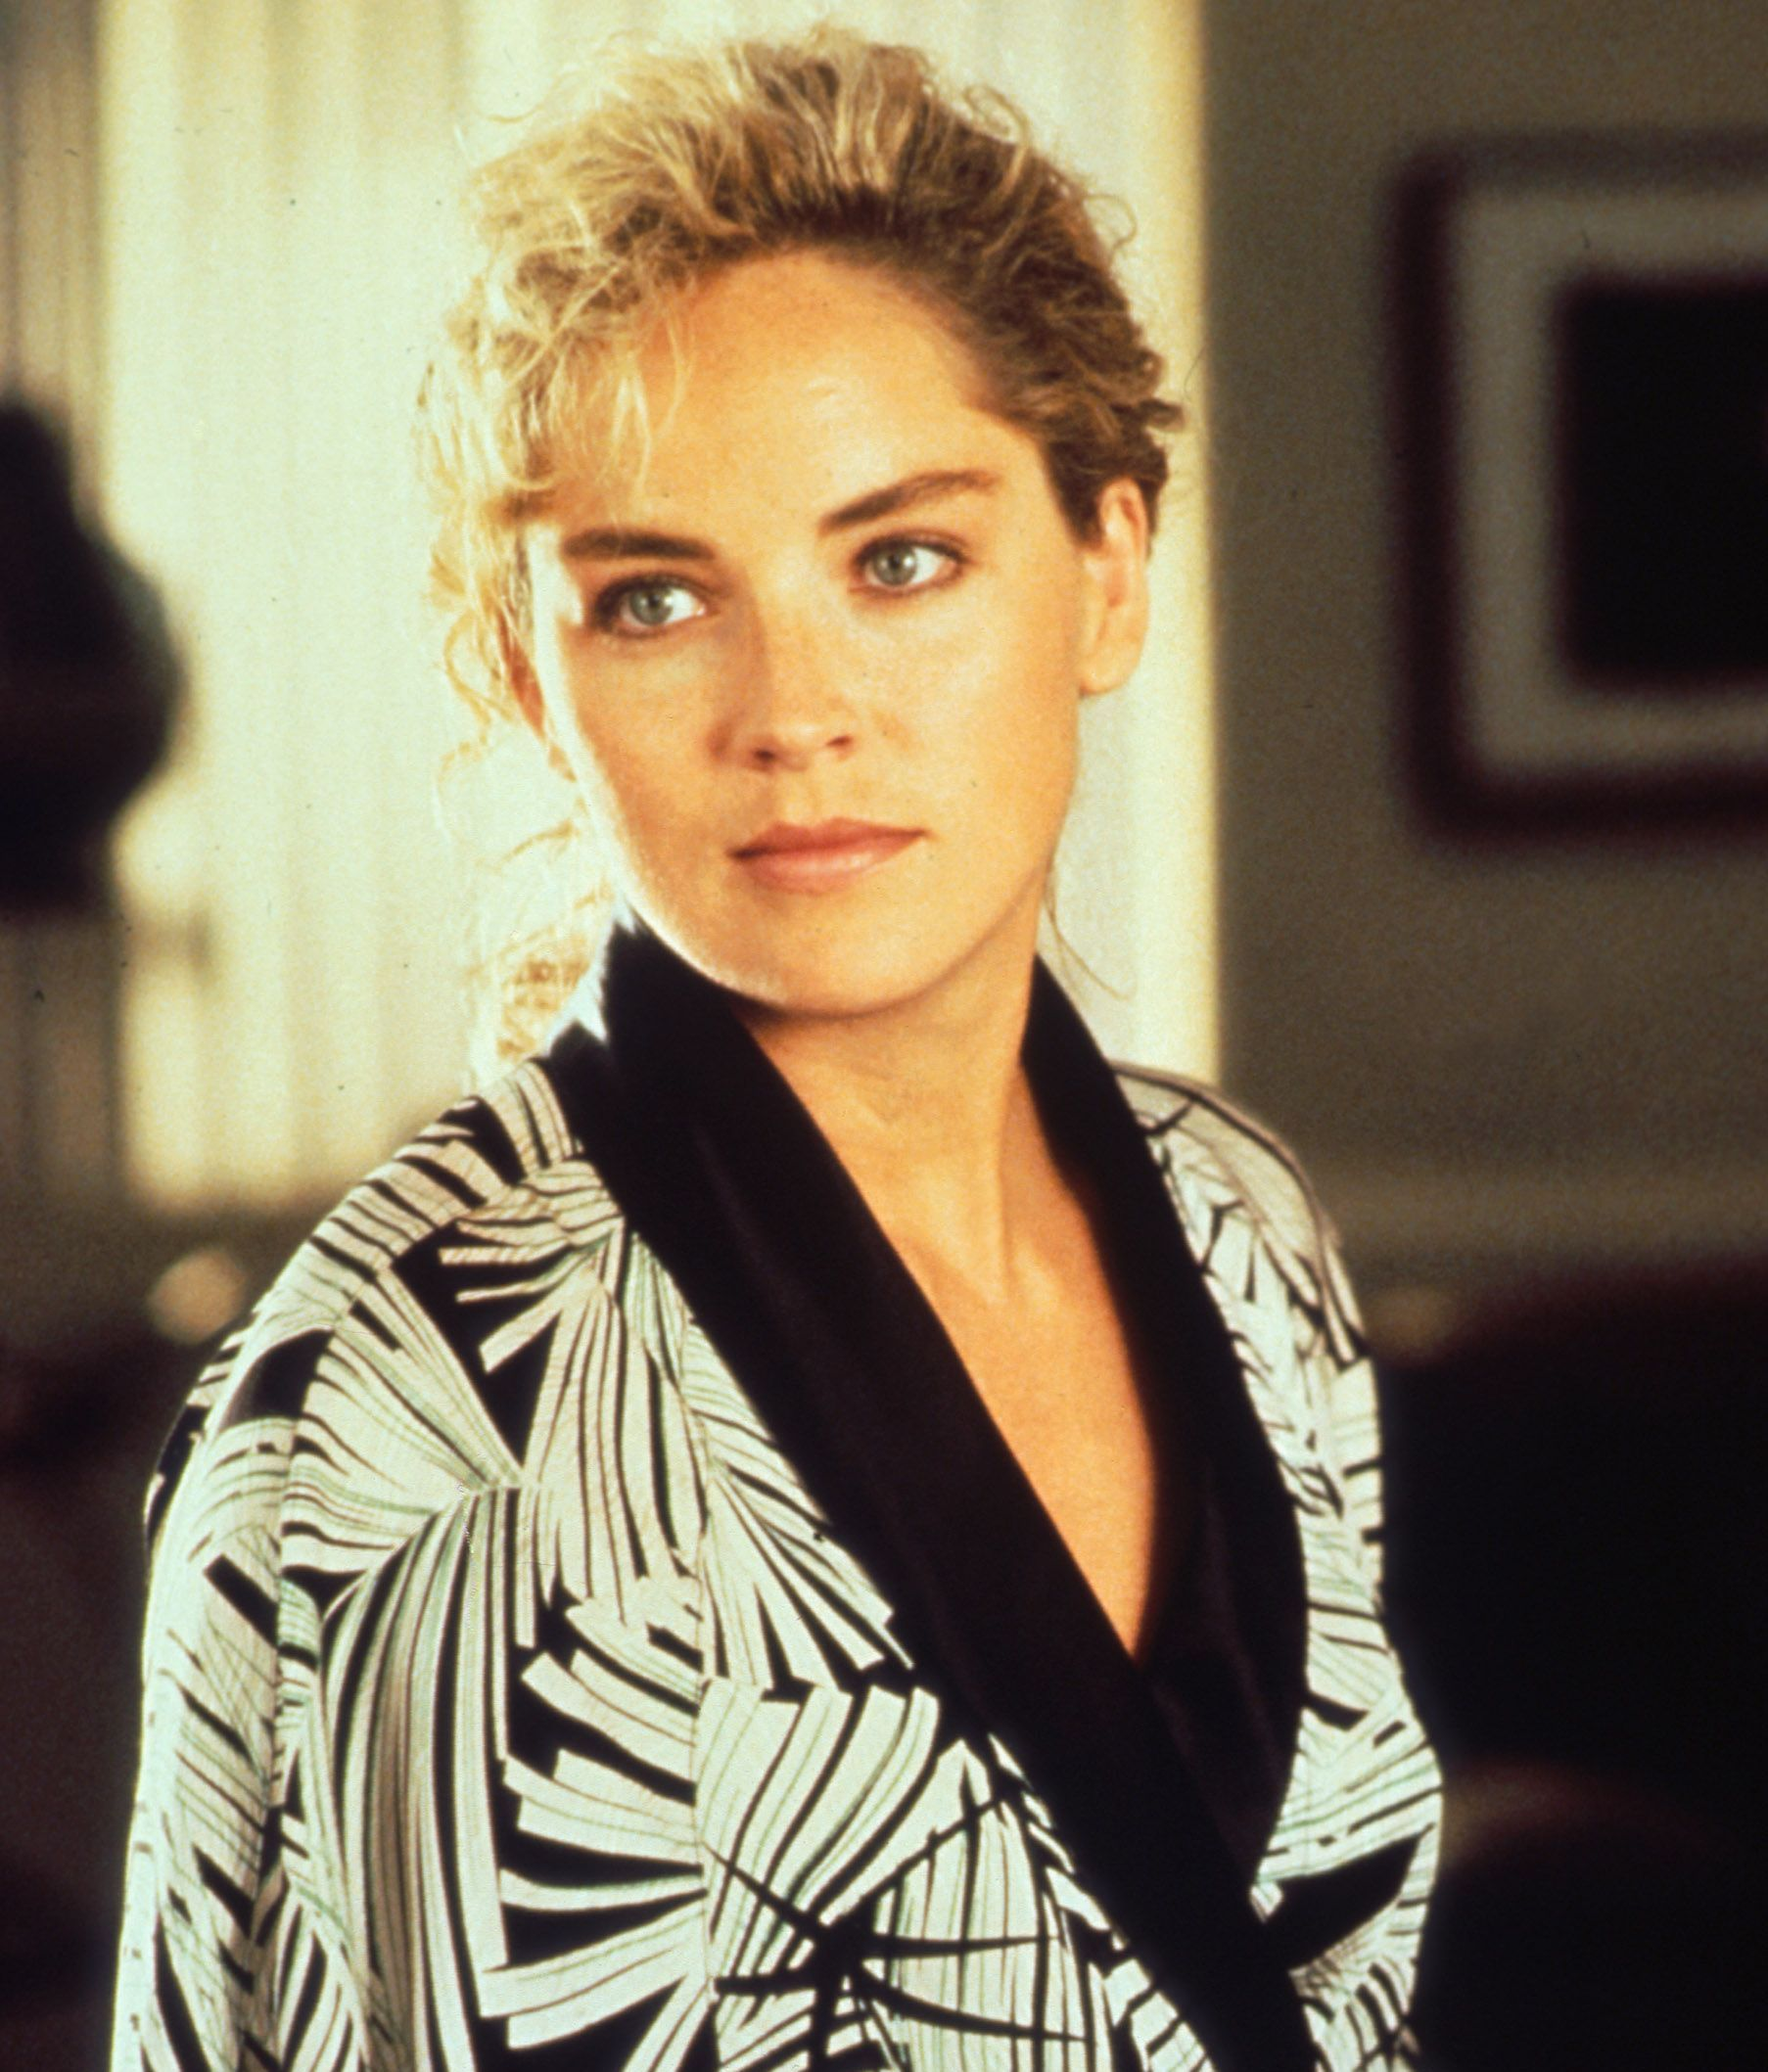 5a2ff5c12b1a3df1b3f546095979cb08 20 Things You Probably Didn't Know About Sharon Stone